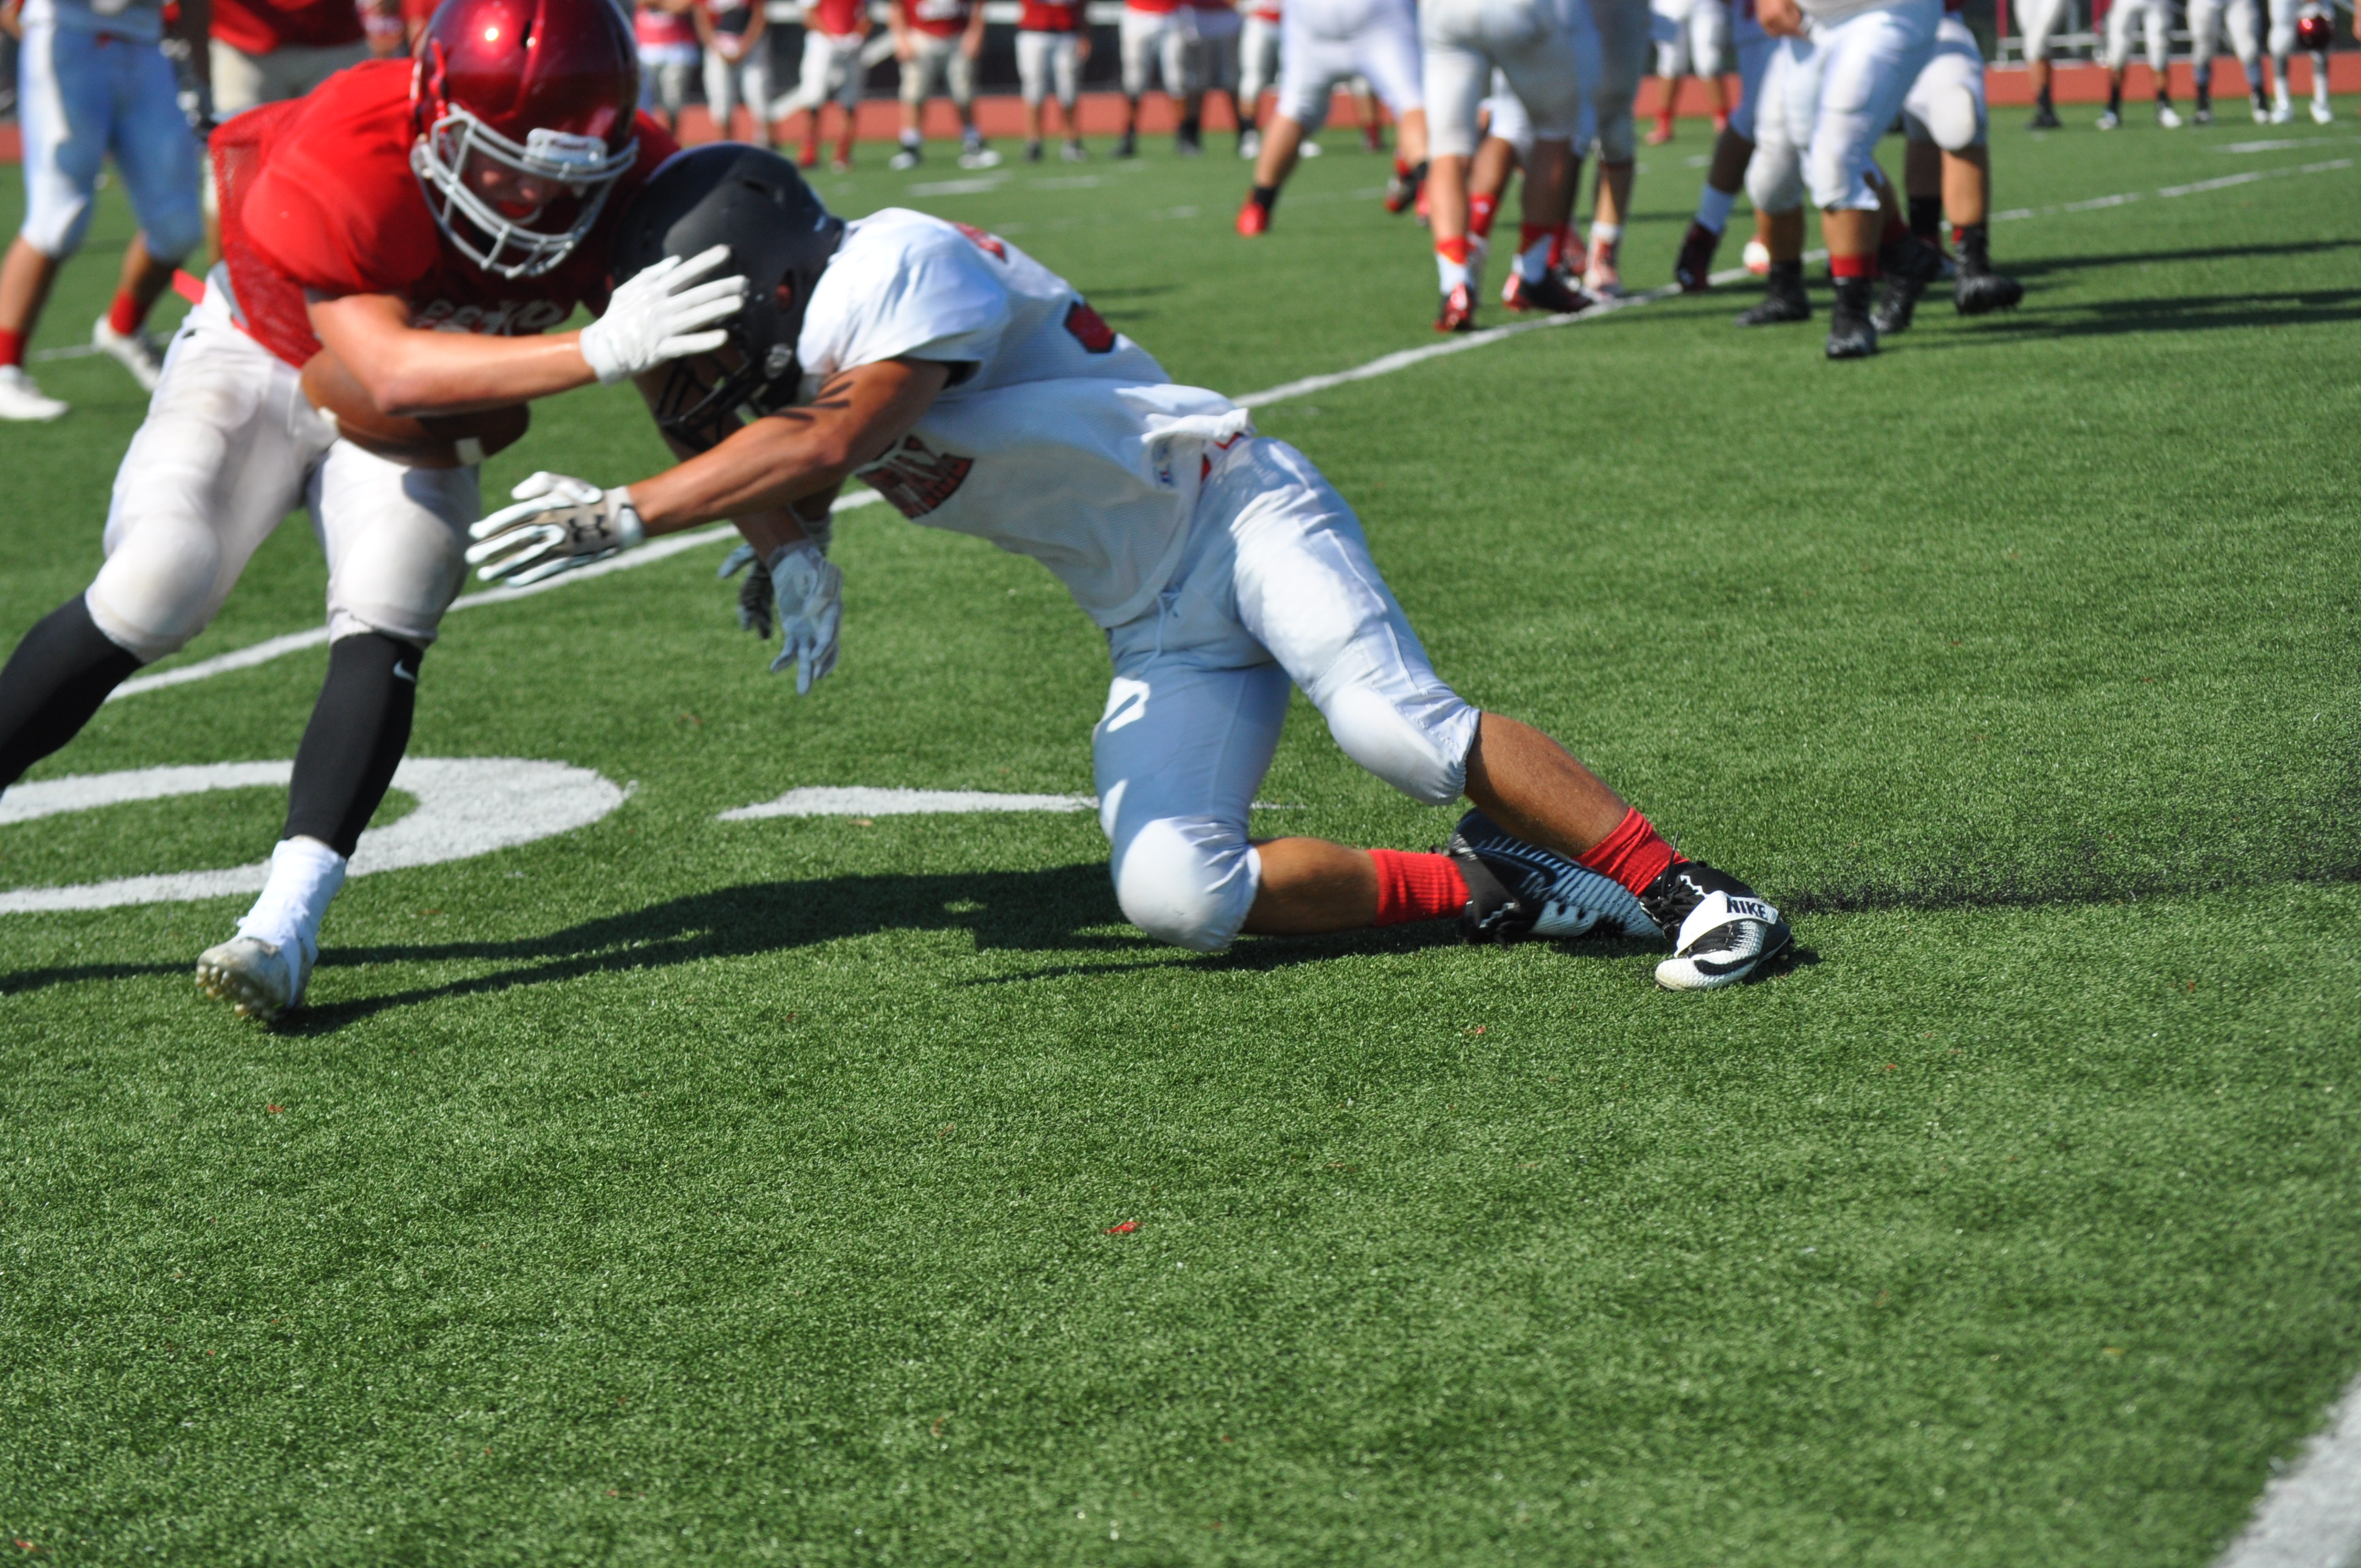 Saucon Valley Panther Steven Rose from his cornerback position has a nose for the football.